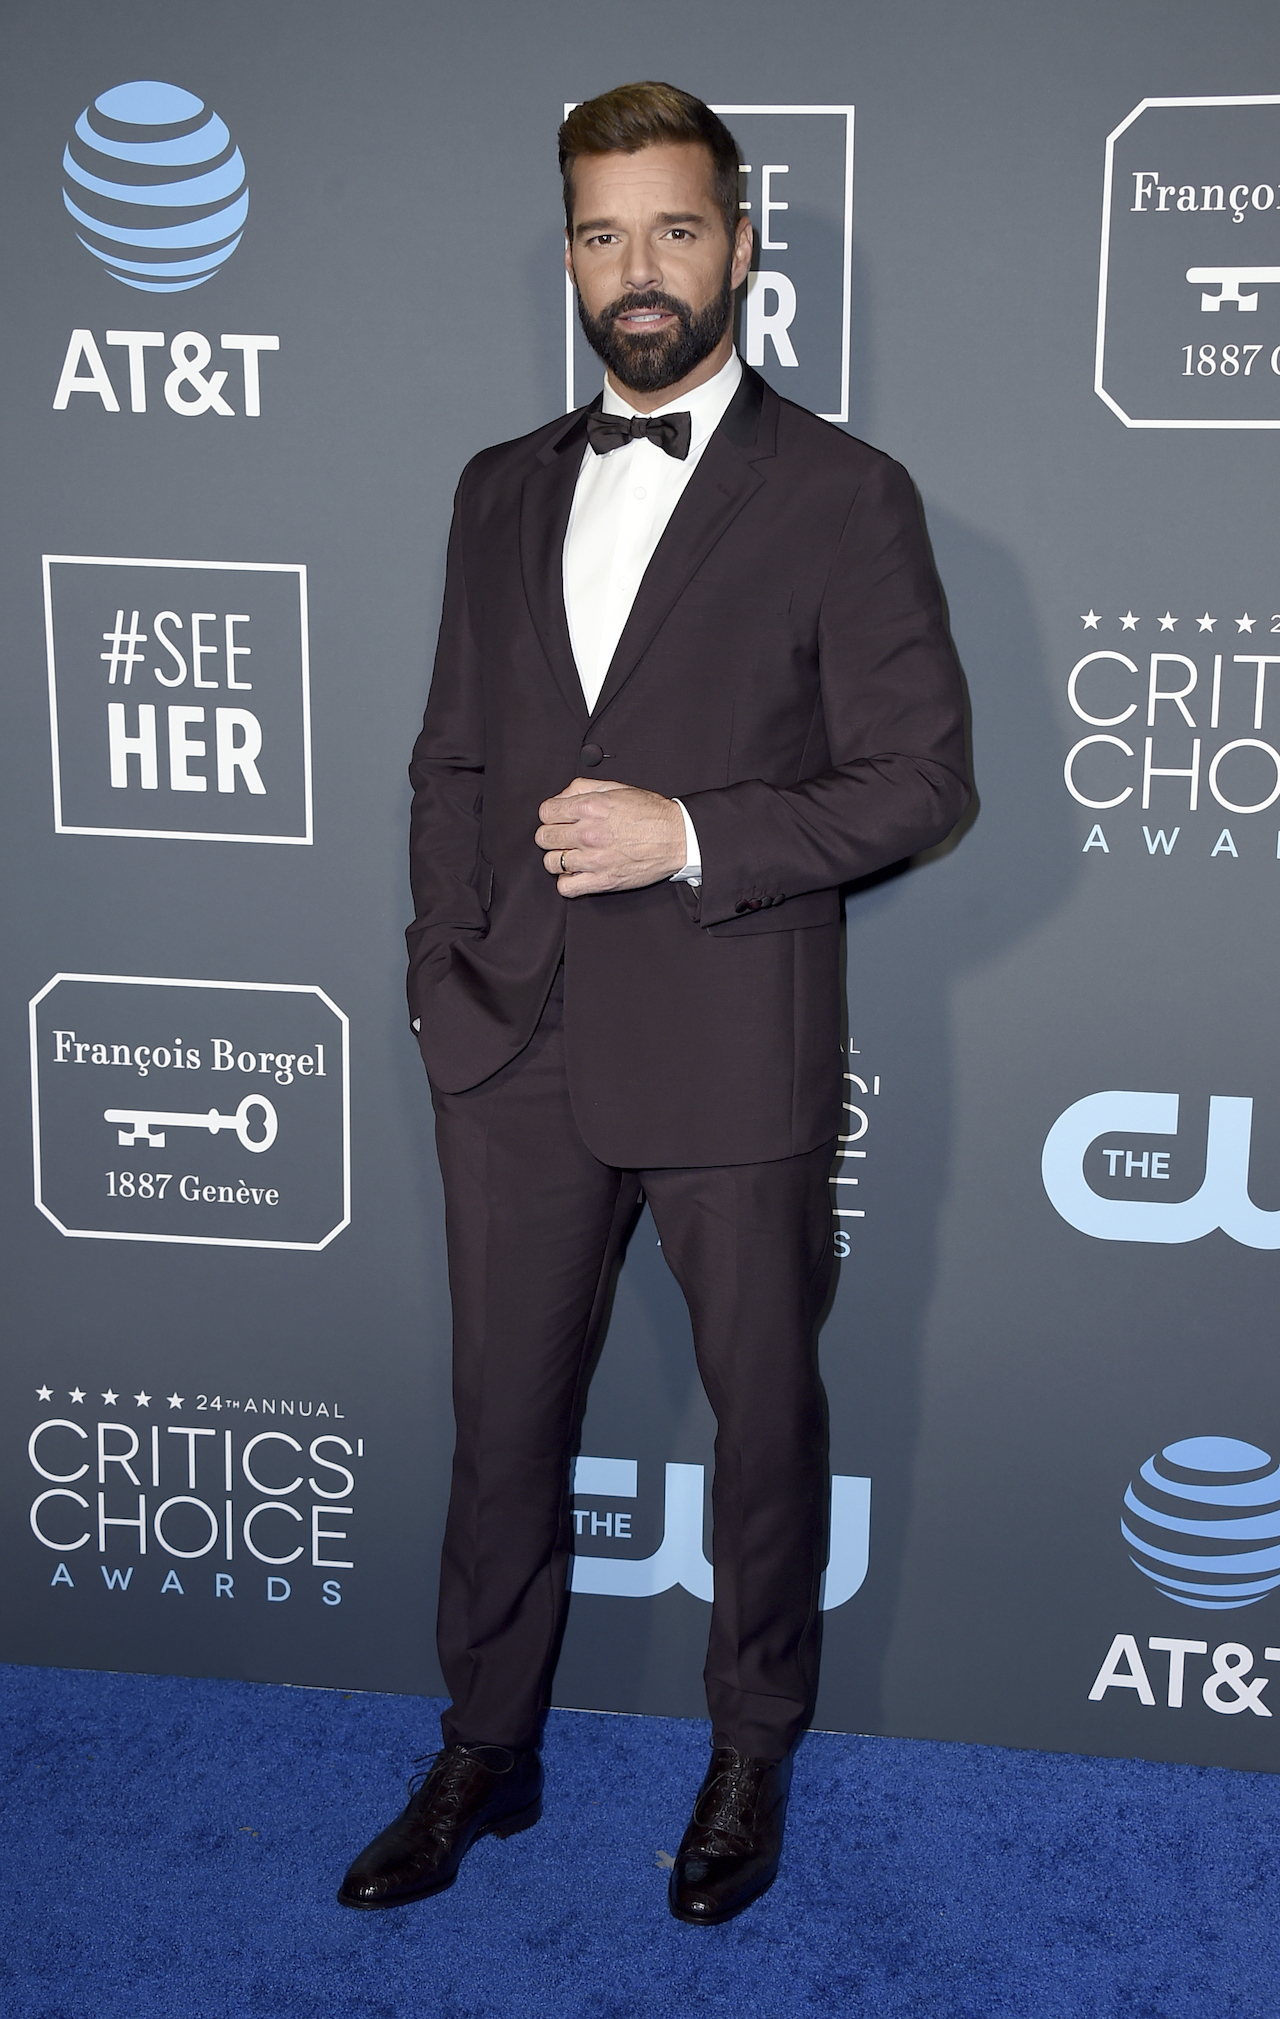 "<div class=""meta image-caption""><div class=""origin-logo origin-image ap""><span>AP</span></div><span class=""caption-text"">Ricky Martin arrives at the 24th annual Critics' Choice Awards on Sunday, Jan. 13, 2019, at the Barker Hangar in Santa Monica, Calif. (Jordan Strauss/Invision/AP)</span></div>"